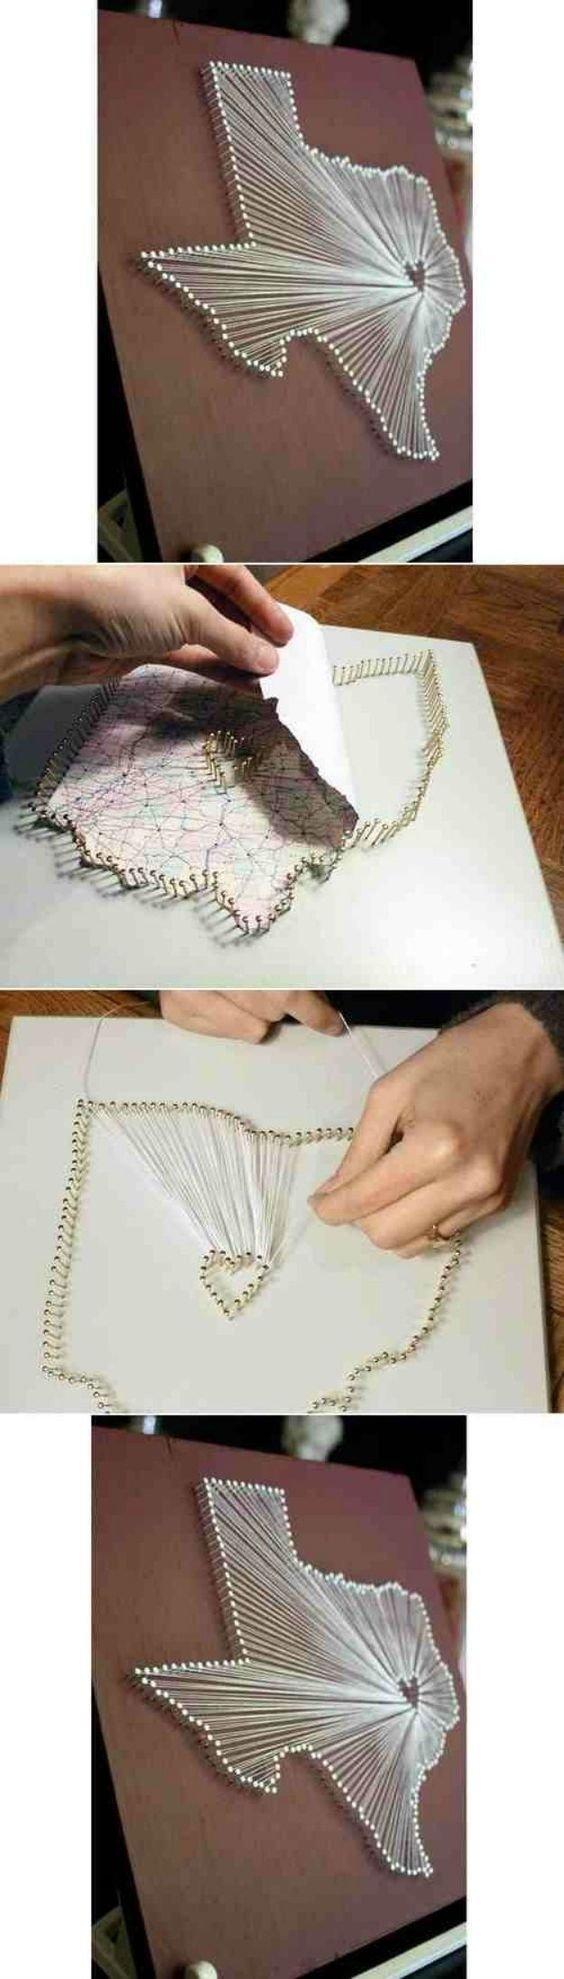 10 Attractive Awesome Birthday Ideas For Her 475 best cool birthday gifts images on pinterest gift ideas 40 2020